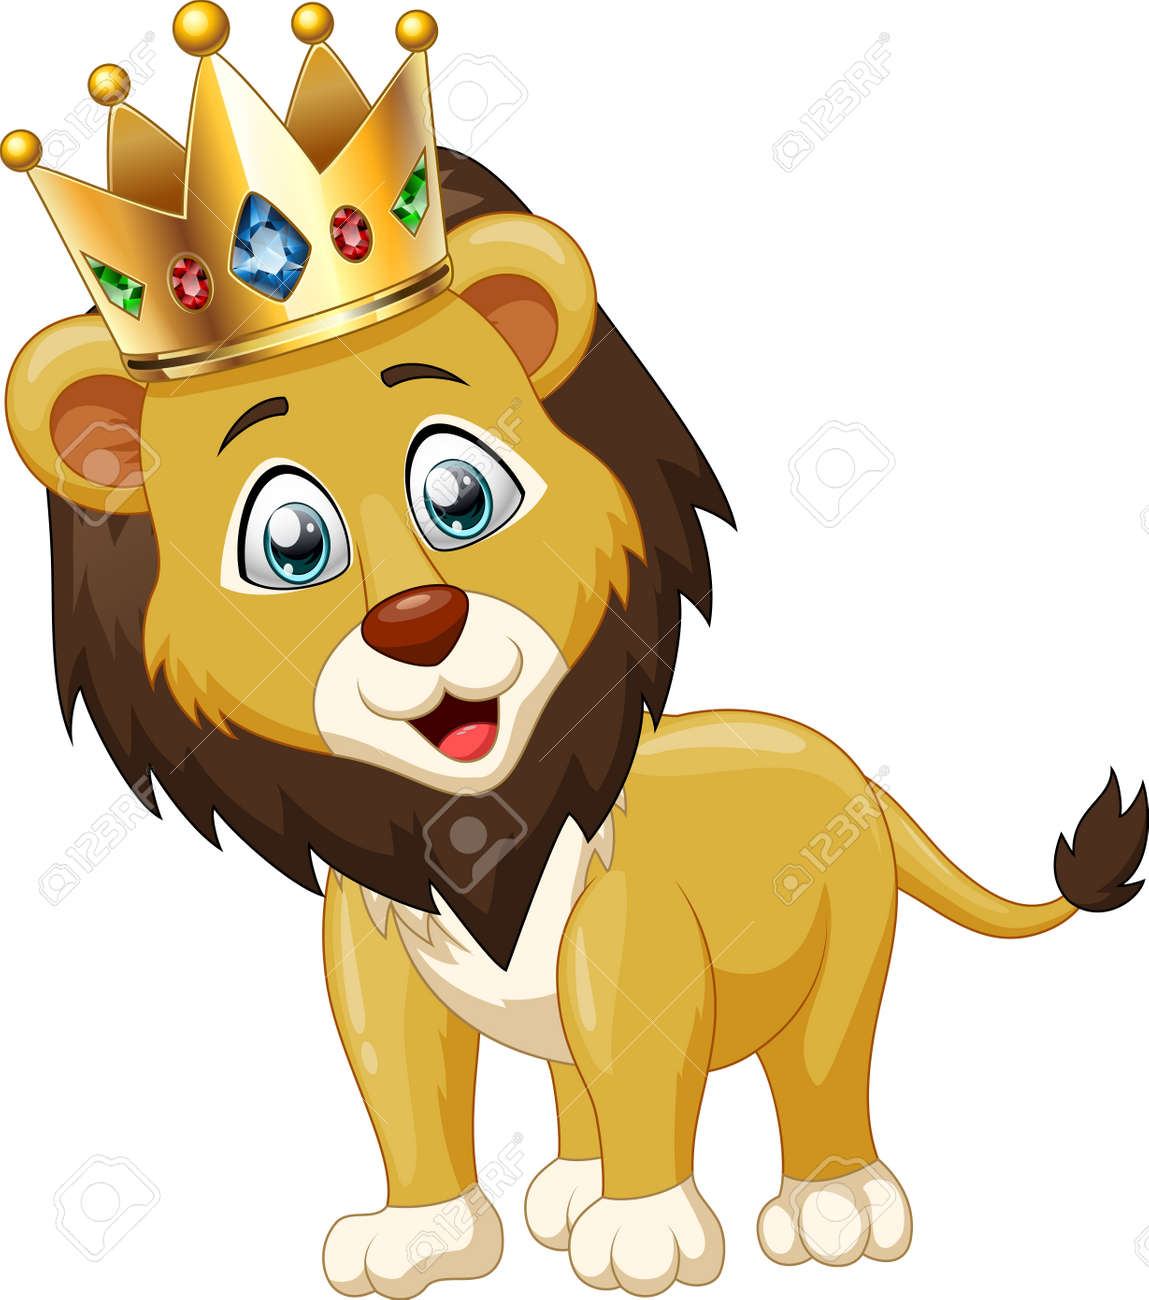 Cute Lion King Cartoon Vector Illustration Royalty Free Cliparts Vectors And Stock Illustration Image 76554493 Browse 1,367 crown cartoon images stock photos and images available, or start a new search to explore more stock photos and images. cute lion king cartoon vector illustration